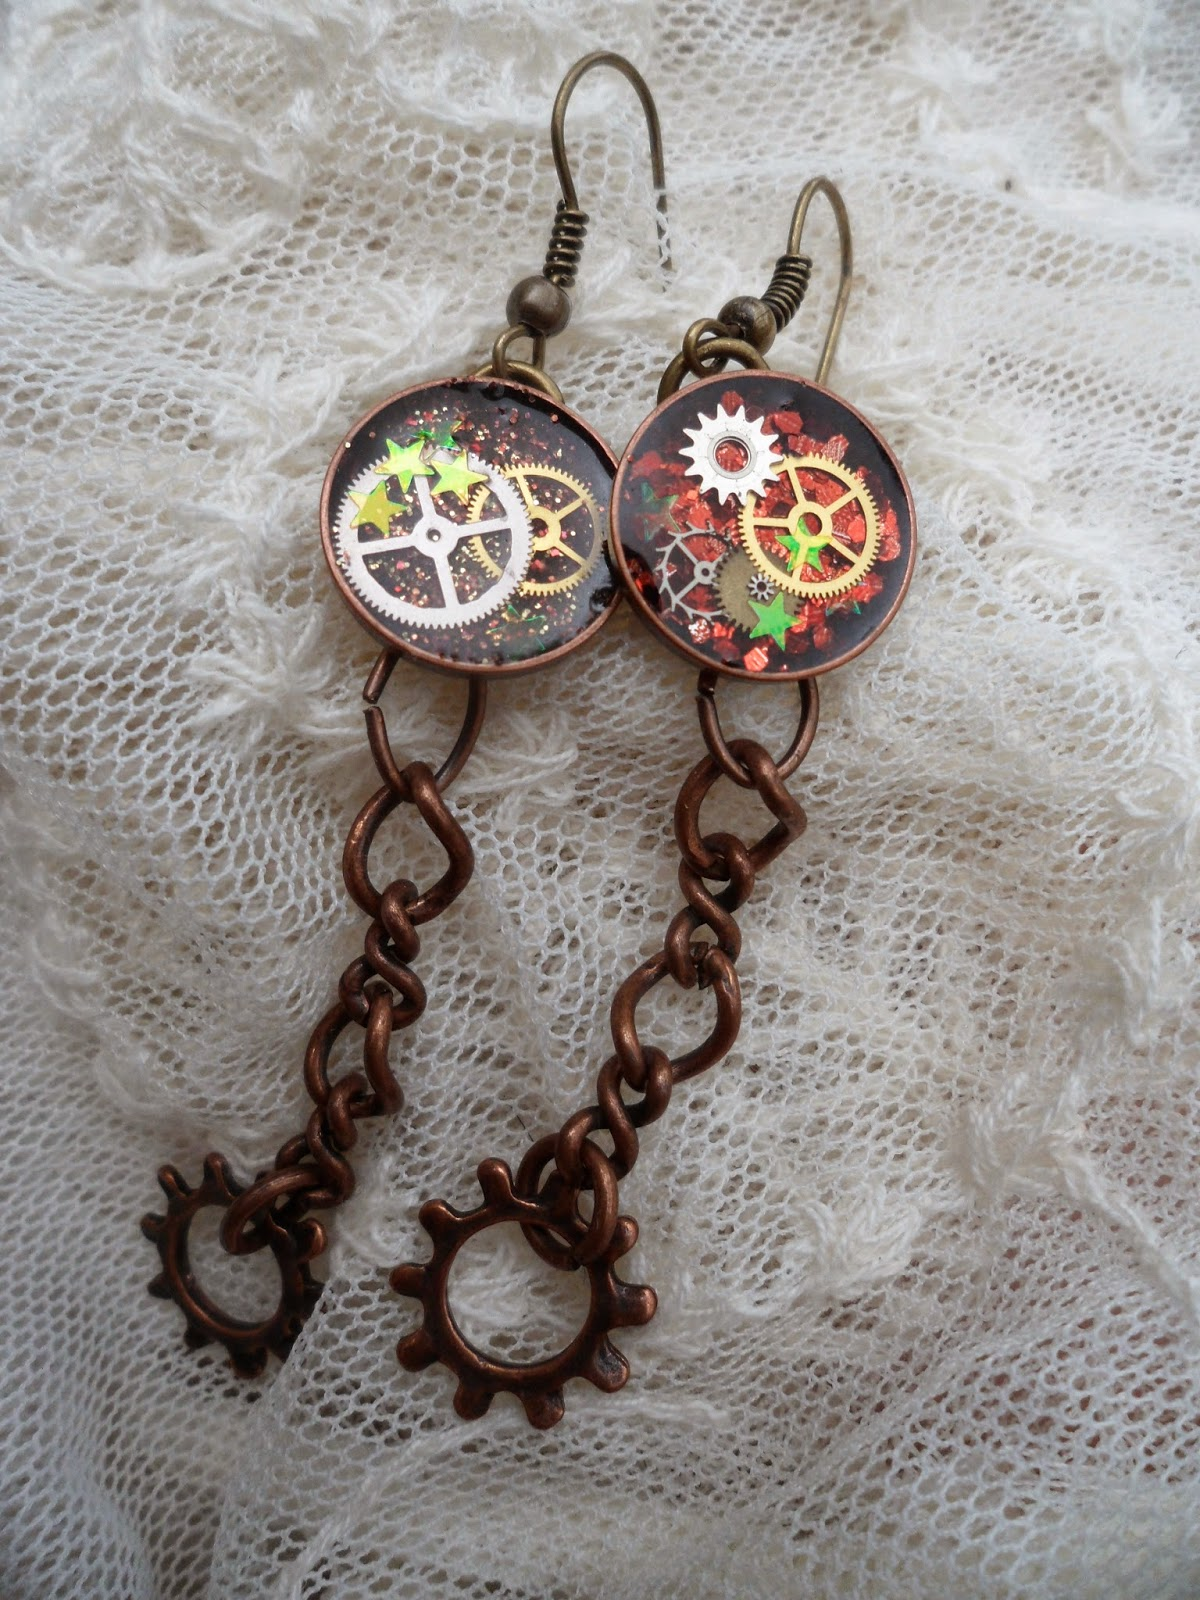 https://www.etsy.com/listing/195762600/timely-affair-resin-steampunk-earring?ref=shop_home_active_1